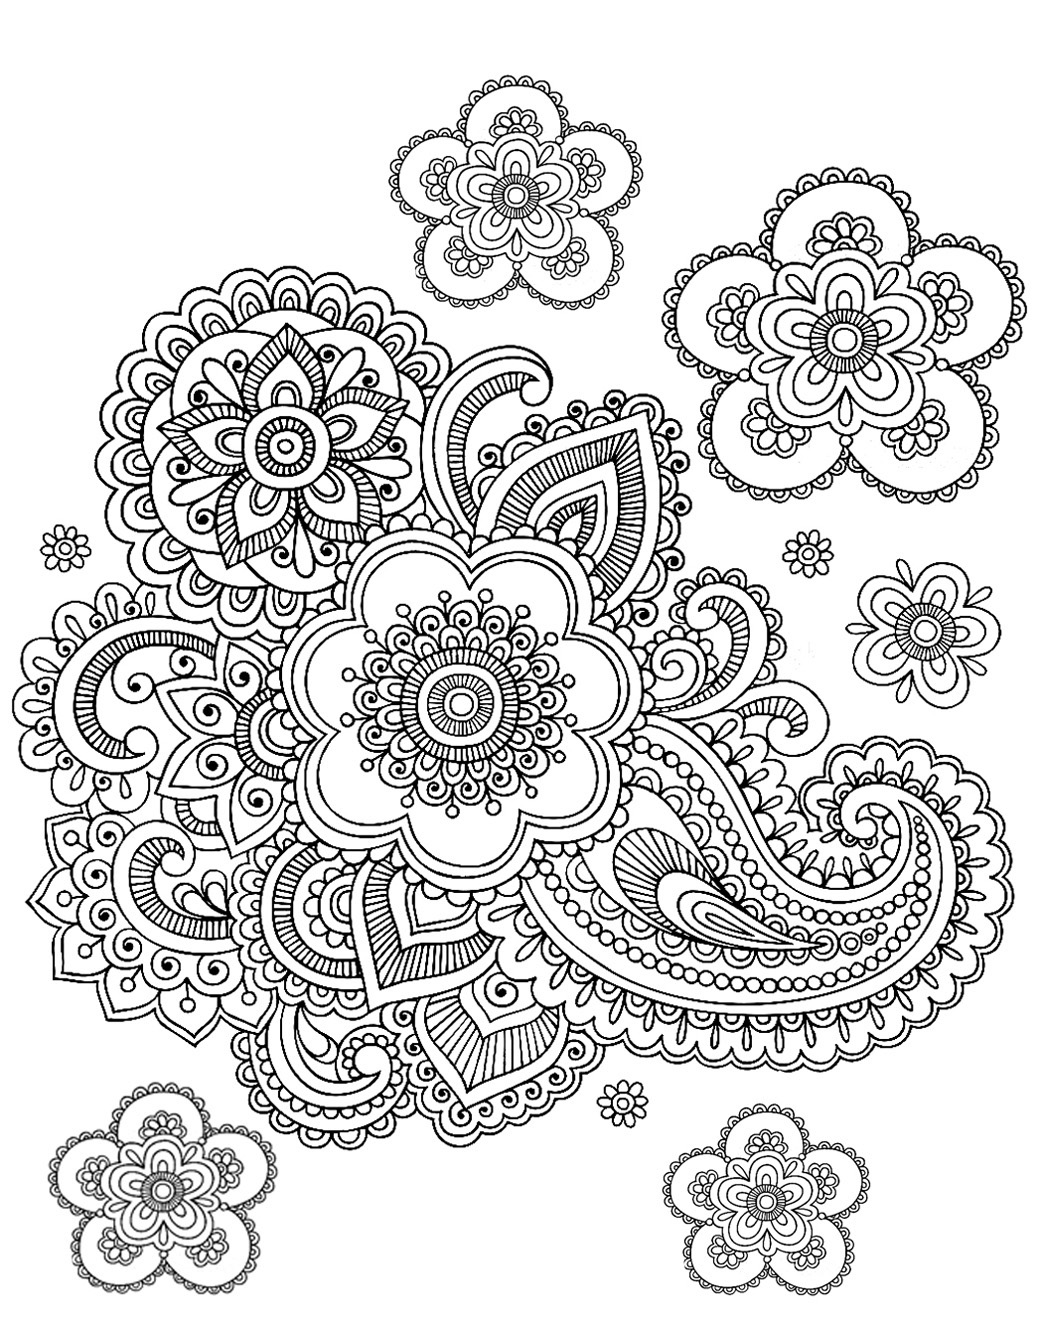 8 Images of Paisley Adult Coloring Pages Printable